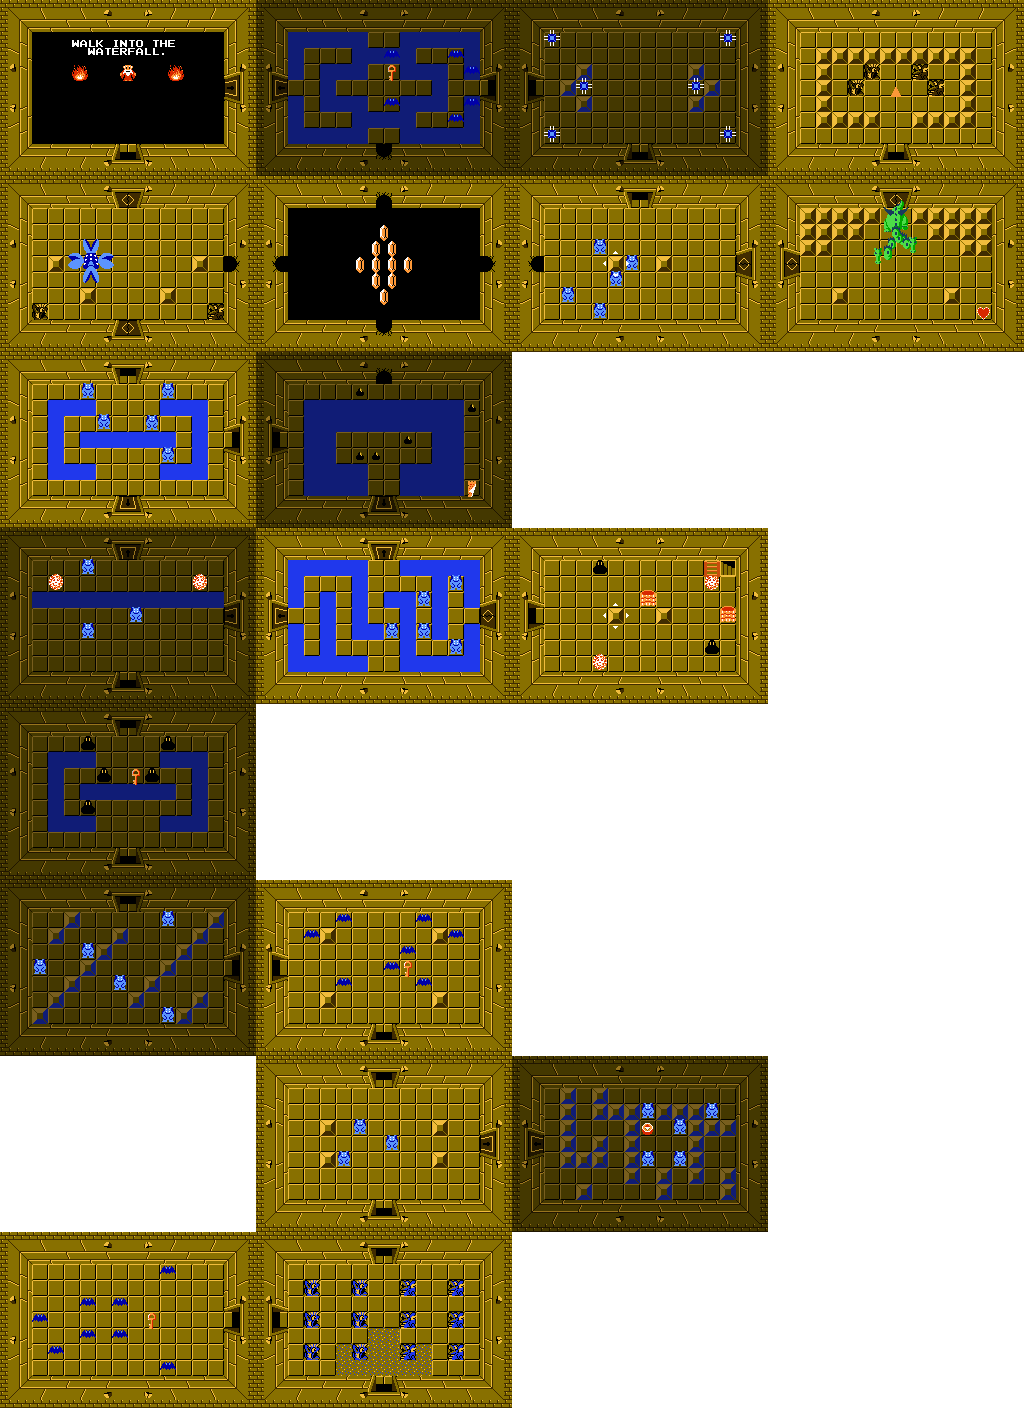 Legend Of Zelda Nes Maps : legend, zelda, Legend, Zelda, Ian-Albert.com